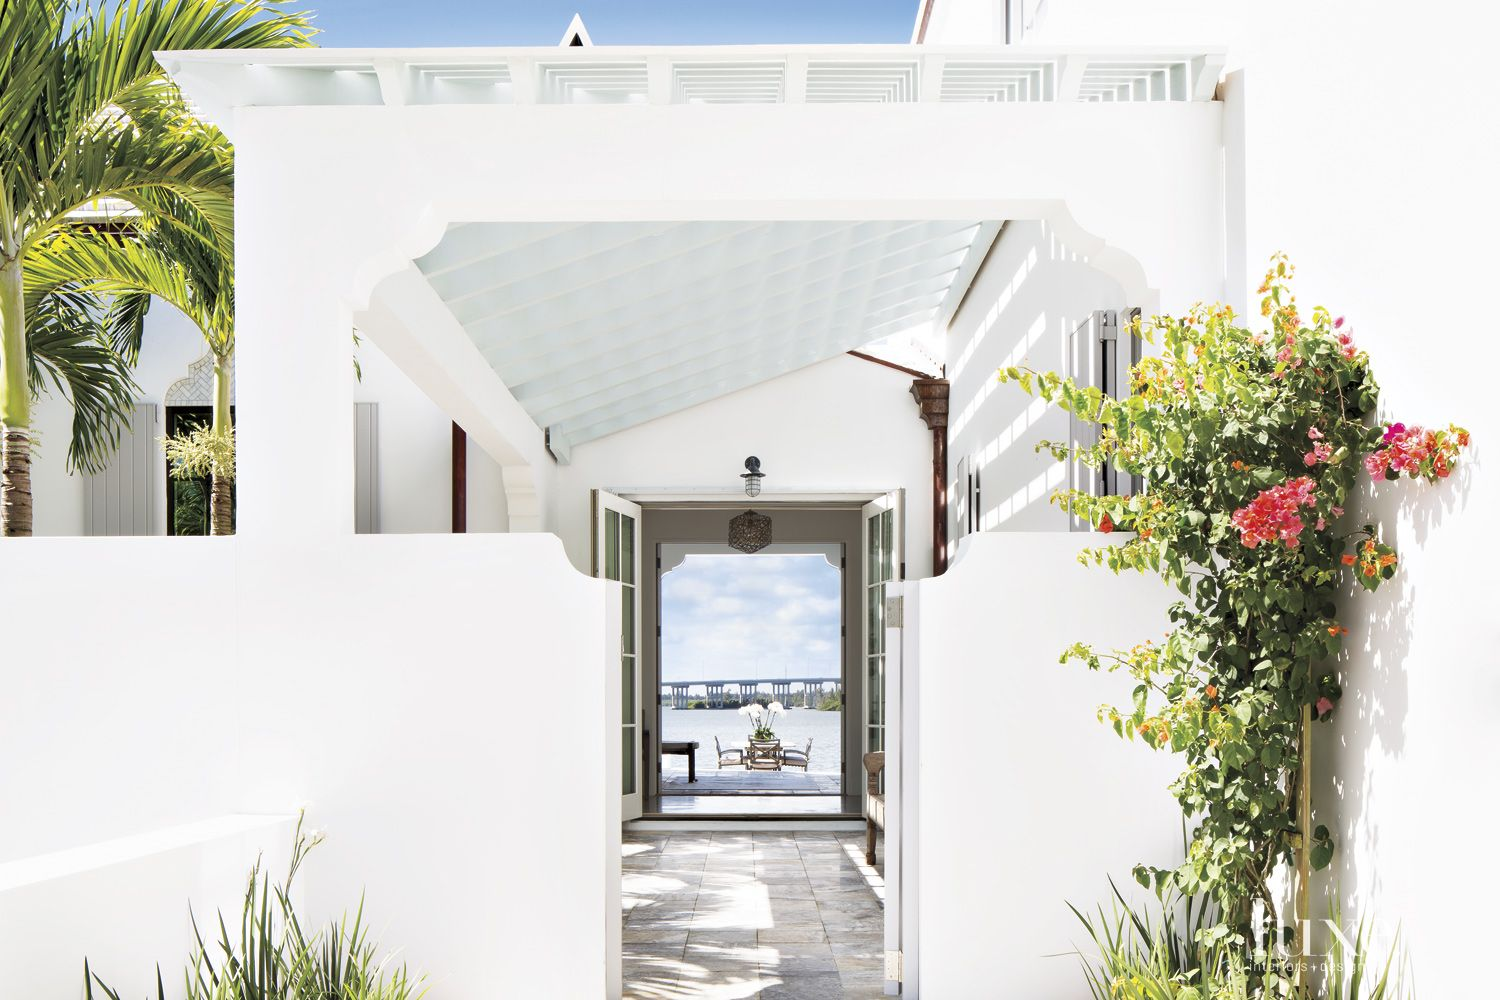 Modern White Breezeway with Trellised Roof